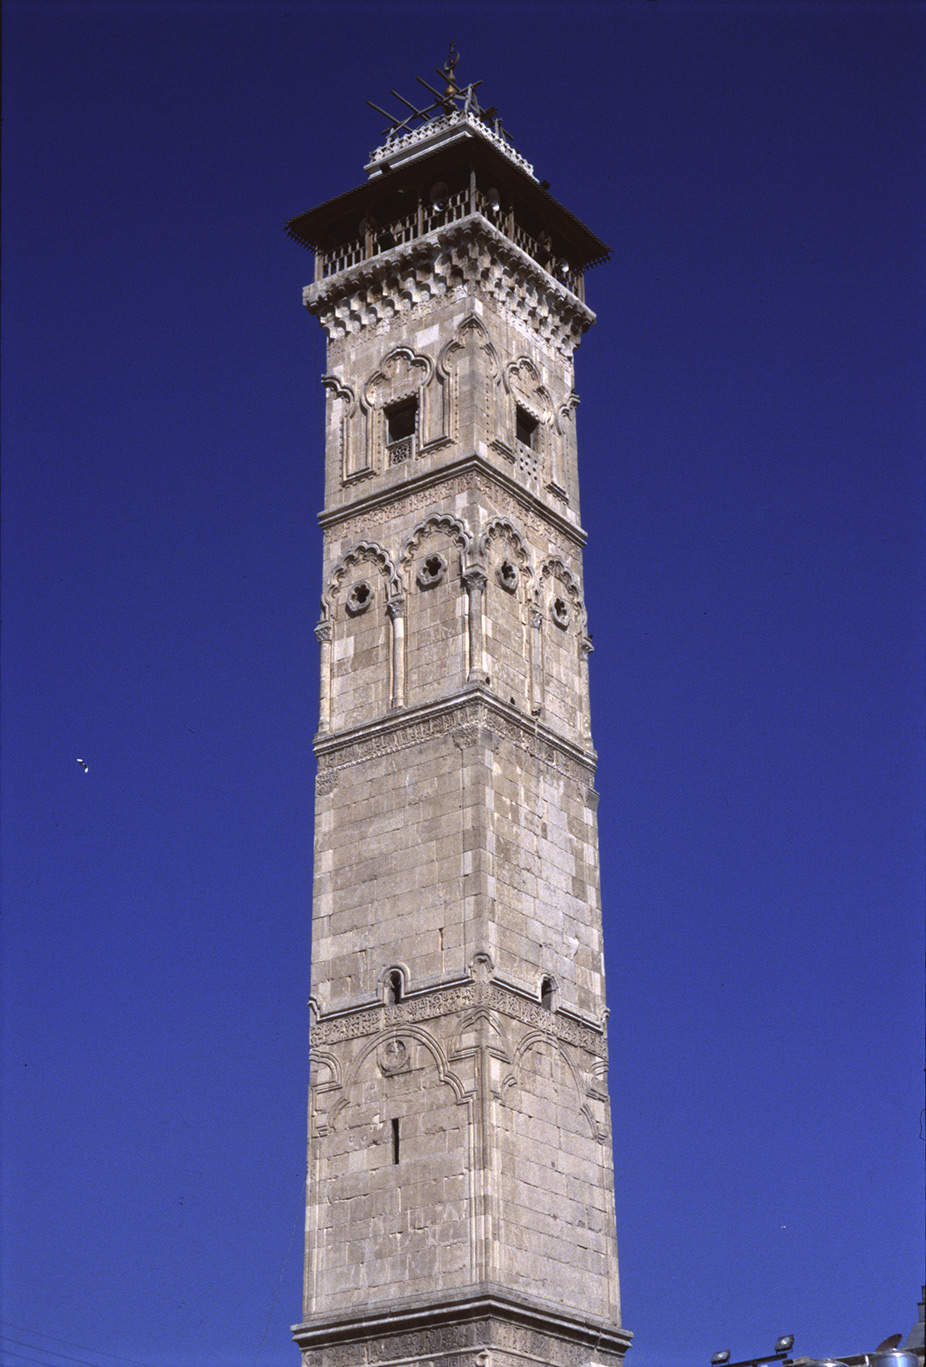 Minaret of the Great Mosque, Aleppo